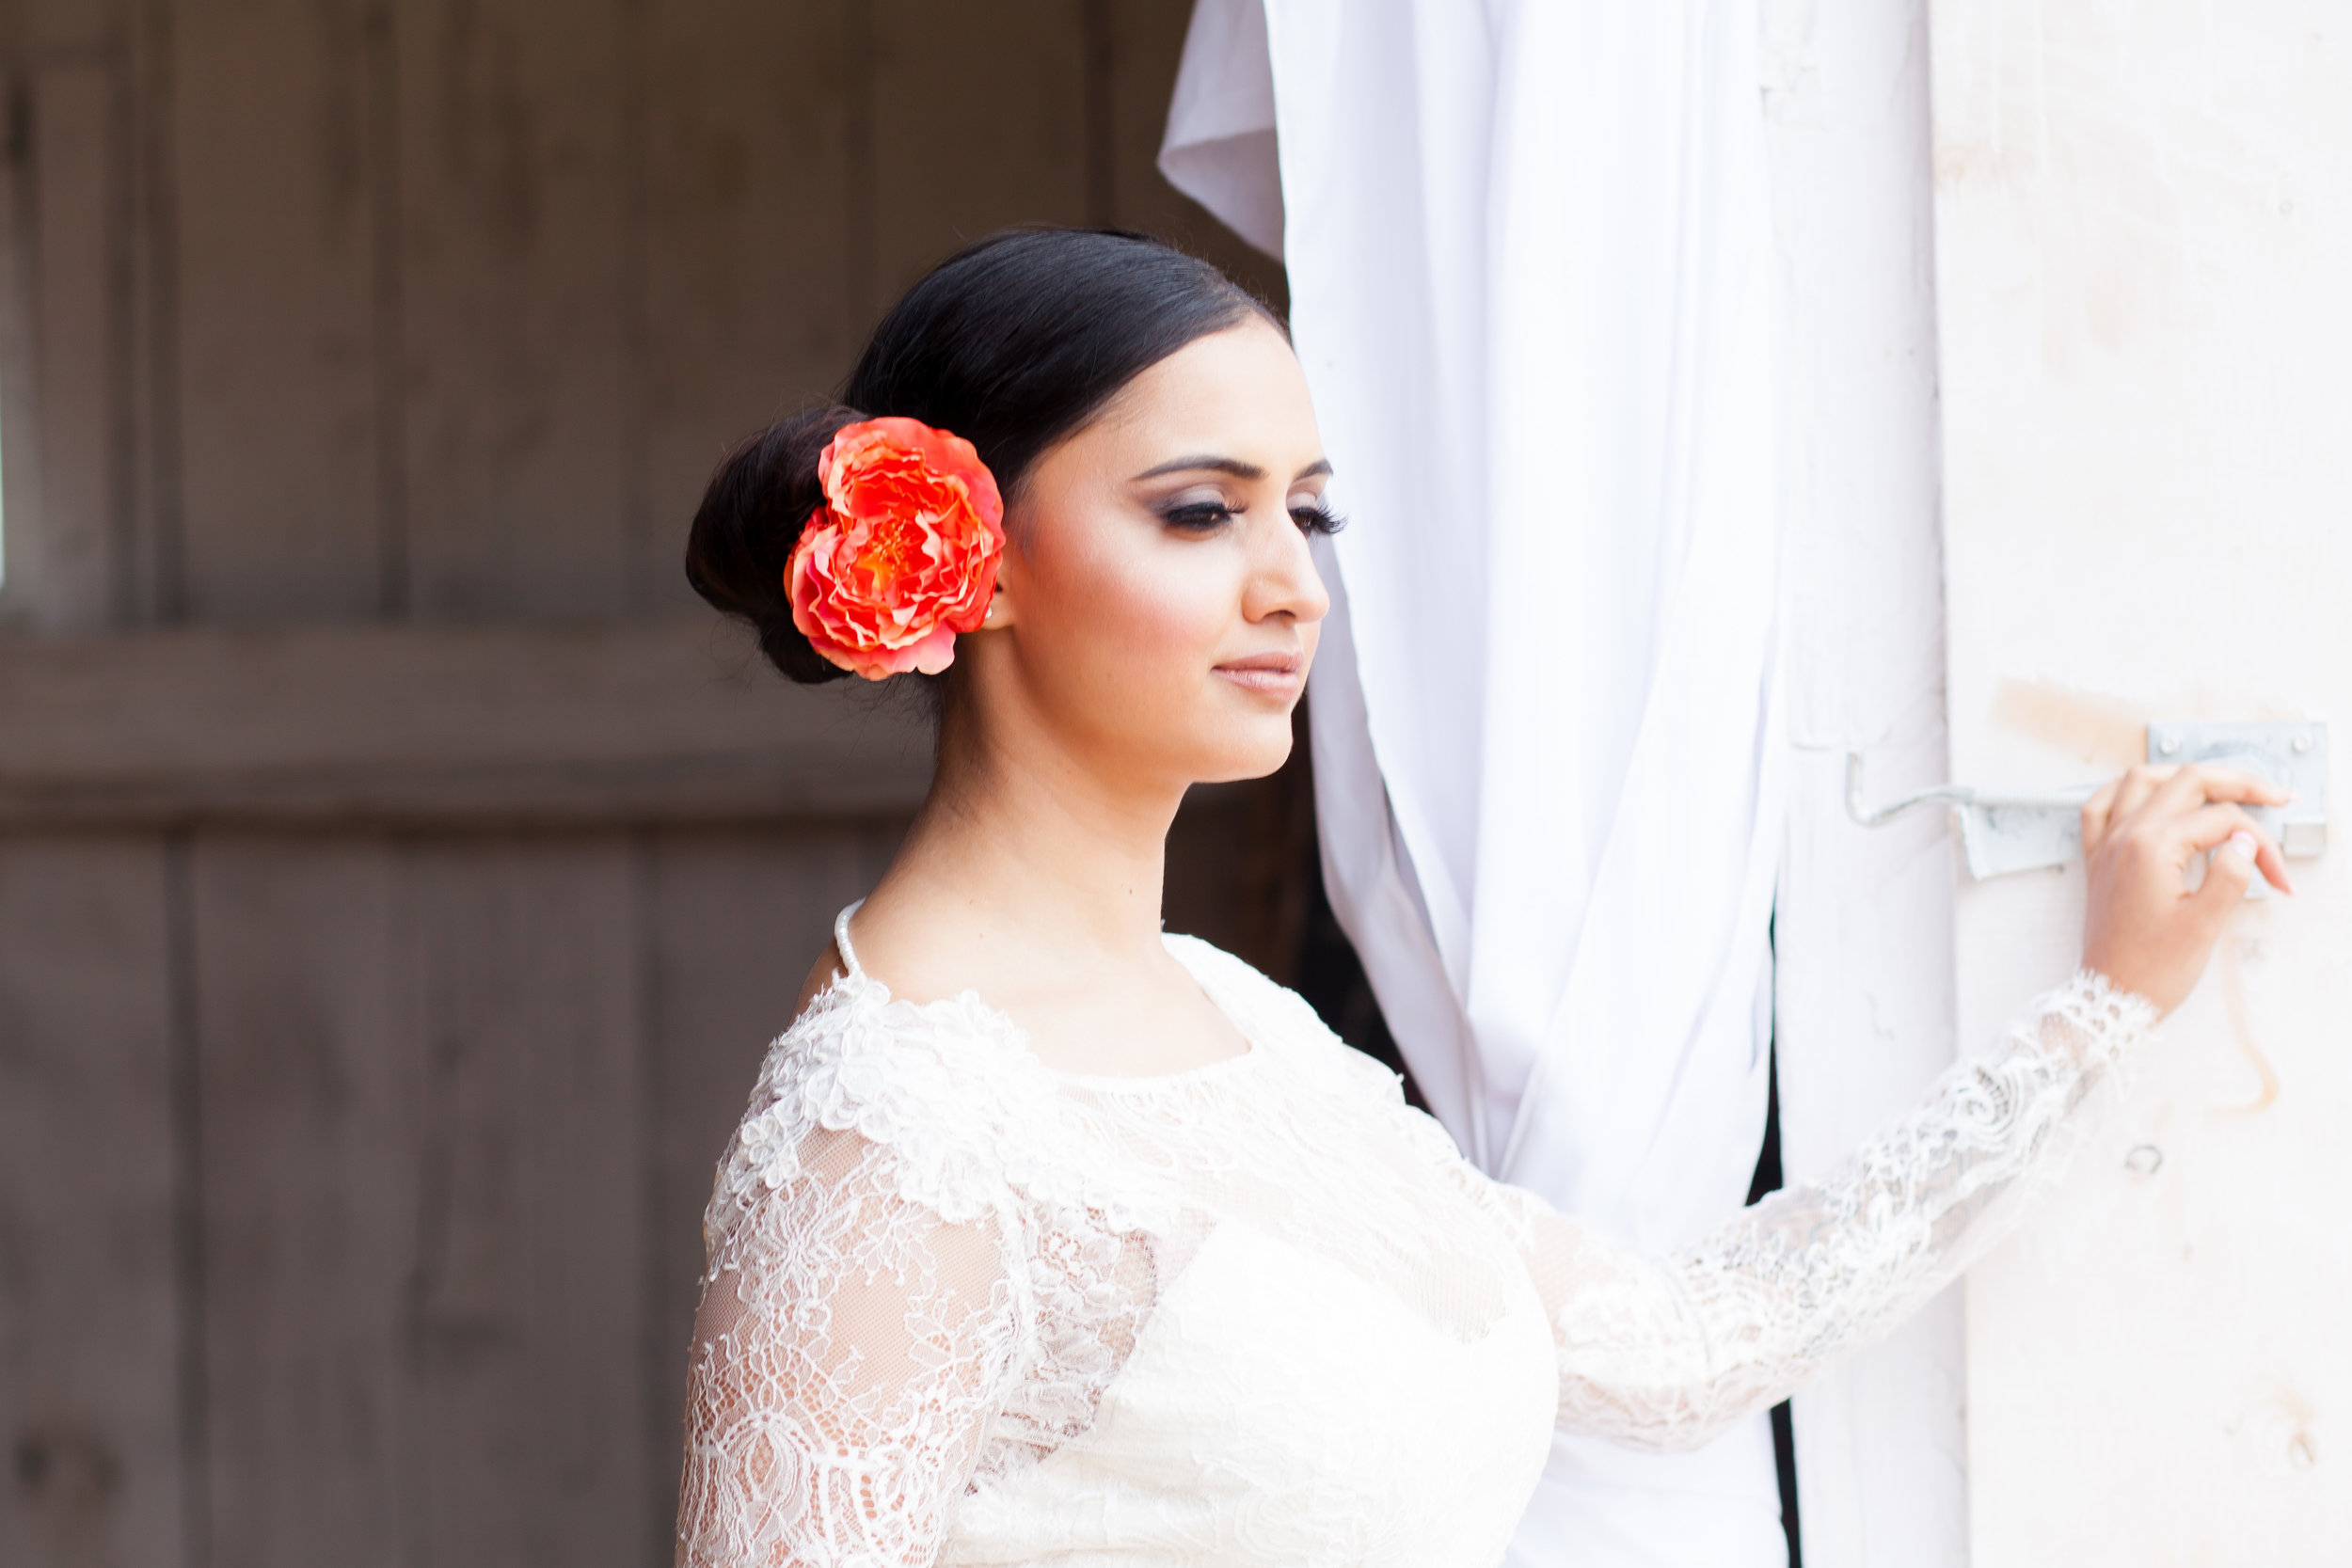 Beauty by Sacha Bride - Surina